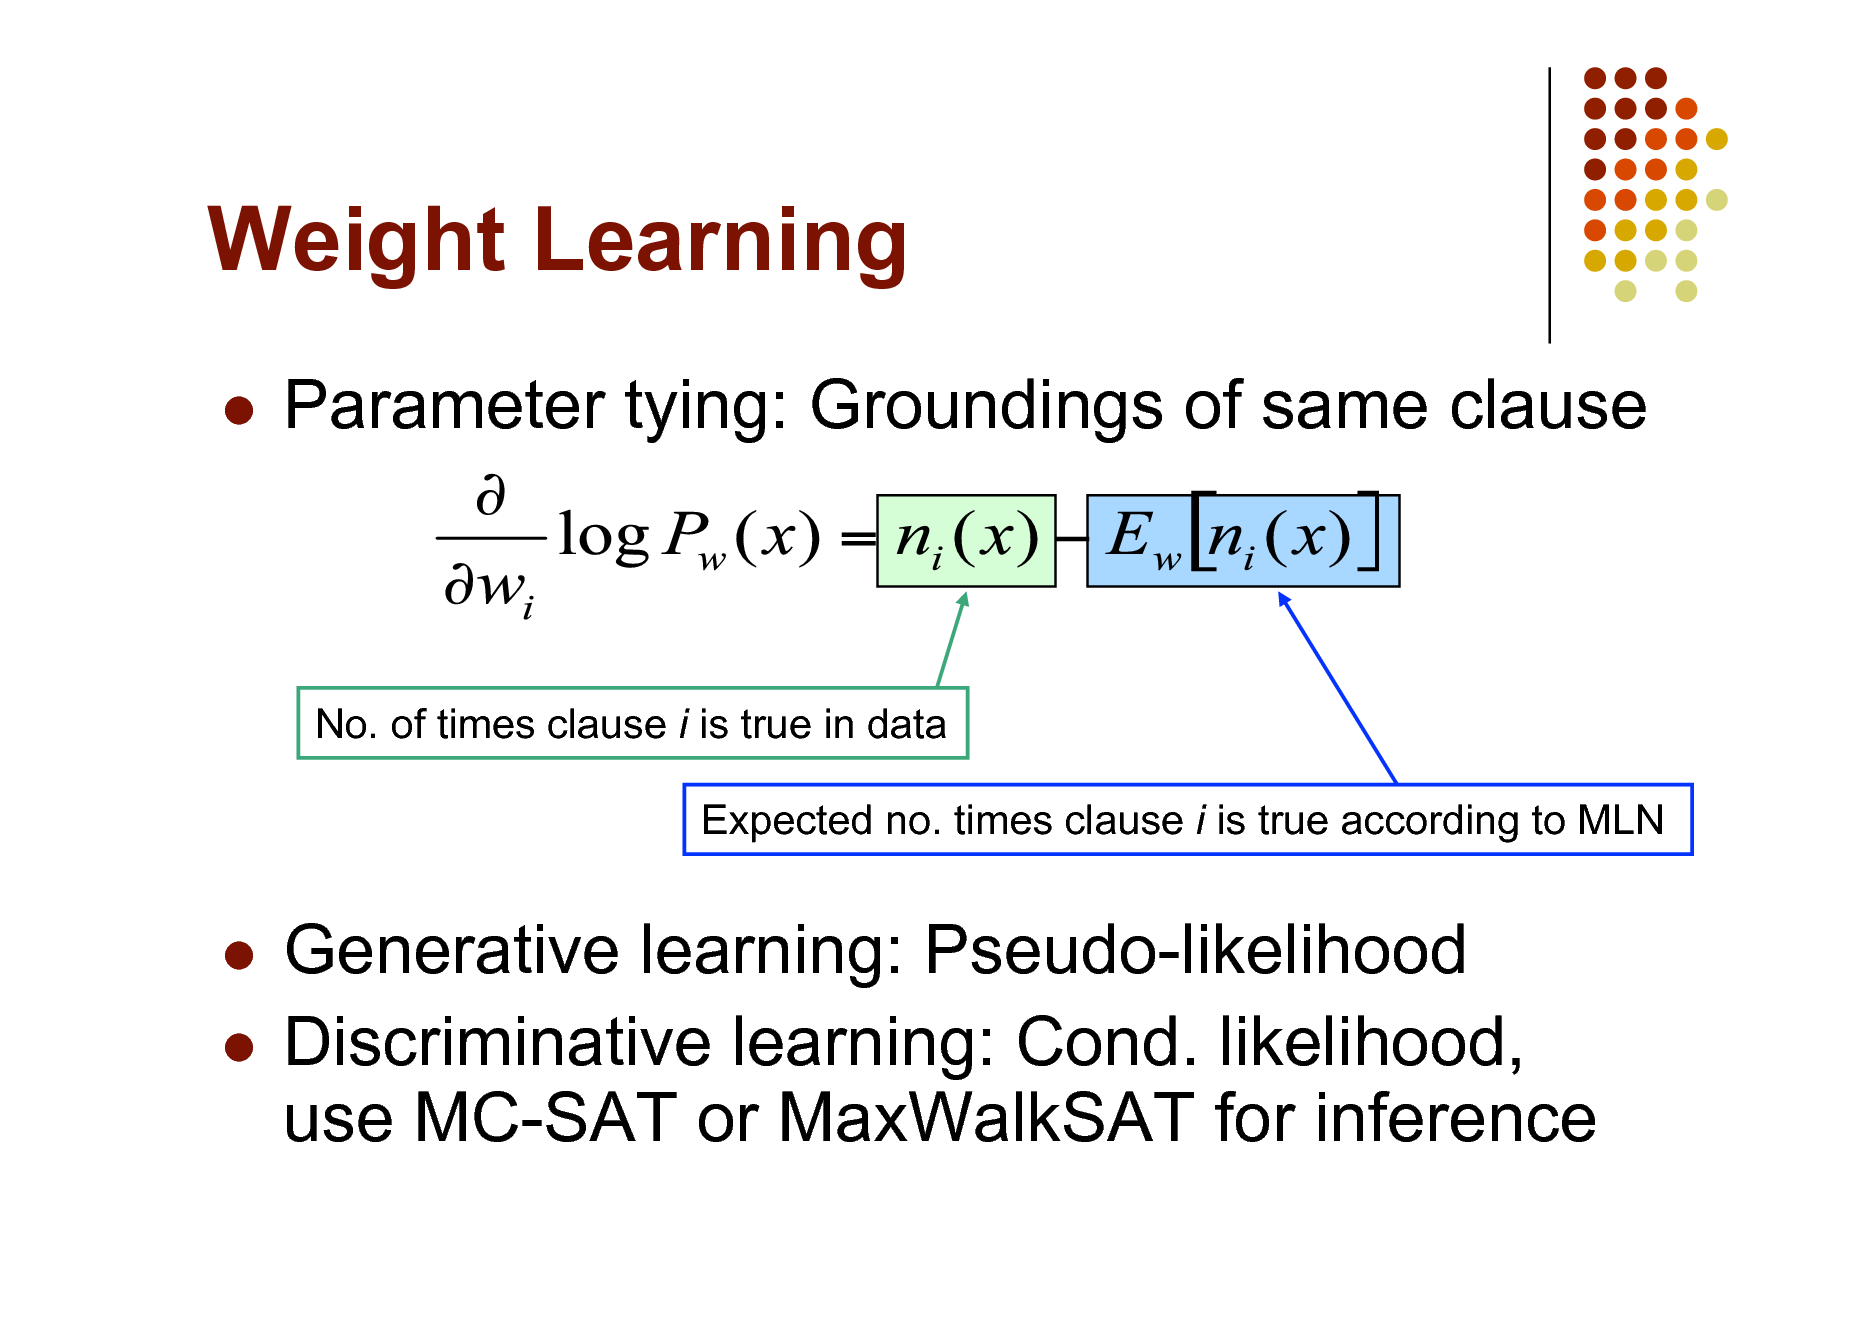 Slide: Weight Learning   Parameter tying: Groundings of same clause  No. of times clause i is true in data Expected no. times clause i is true according to MLN  Generative learning: Pseudo-likelihood  Discriminative learning: Cond. likelihood, use MC-SAT or MaxWalkSAT for inference